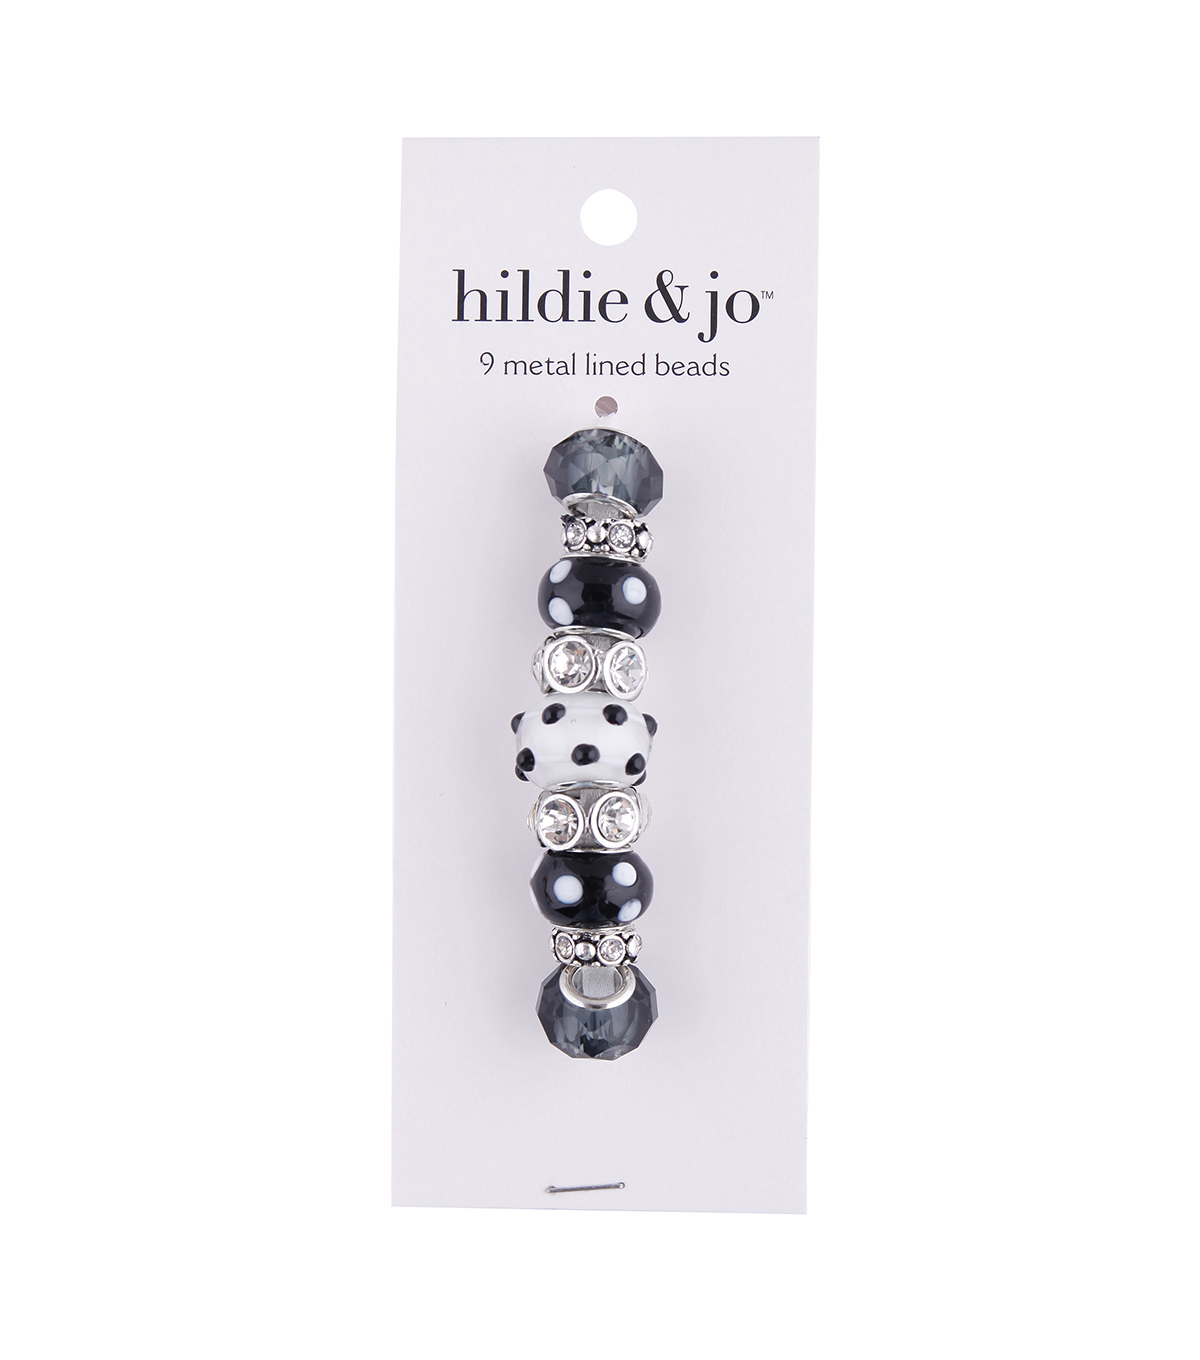 hildie & jo™ 9 pk Metal Lined Glass Beads-Black & White